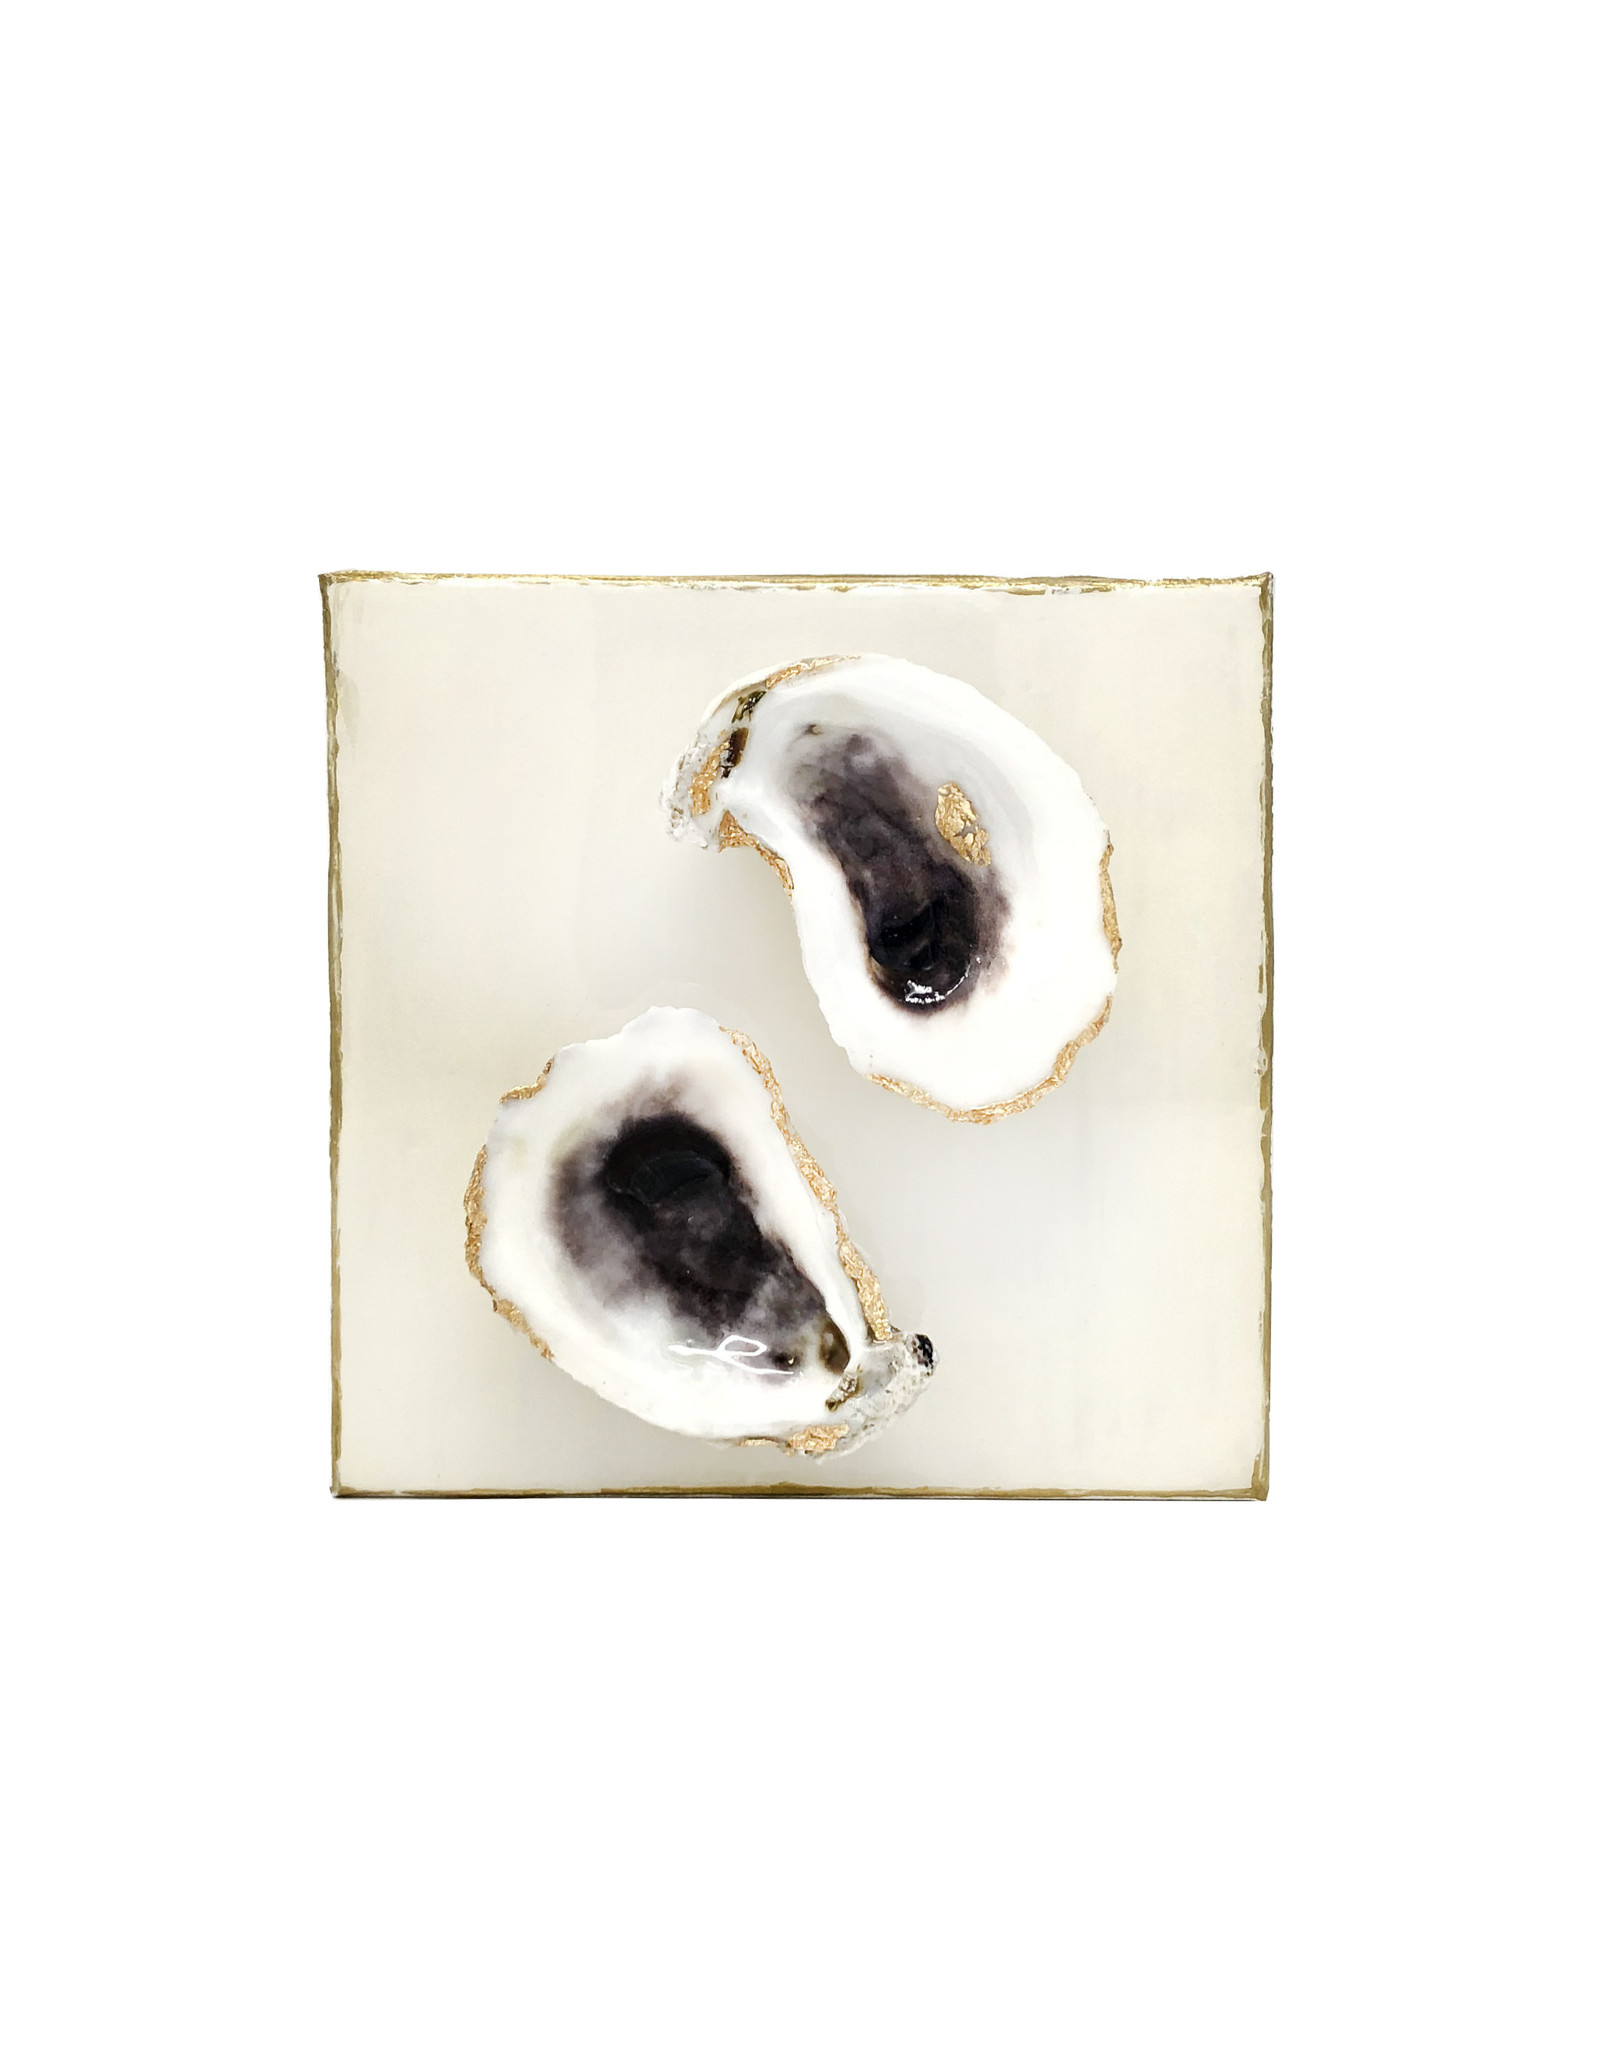 6x6 Oyster